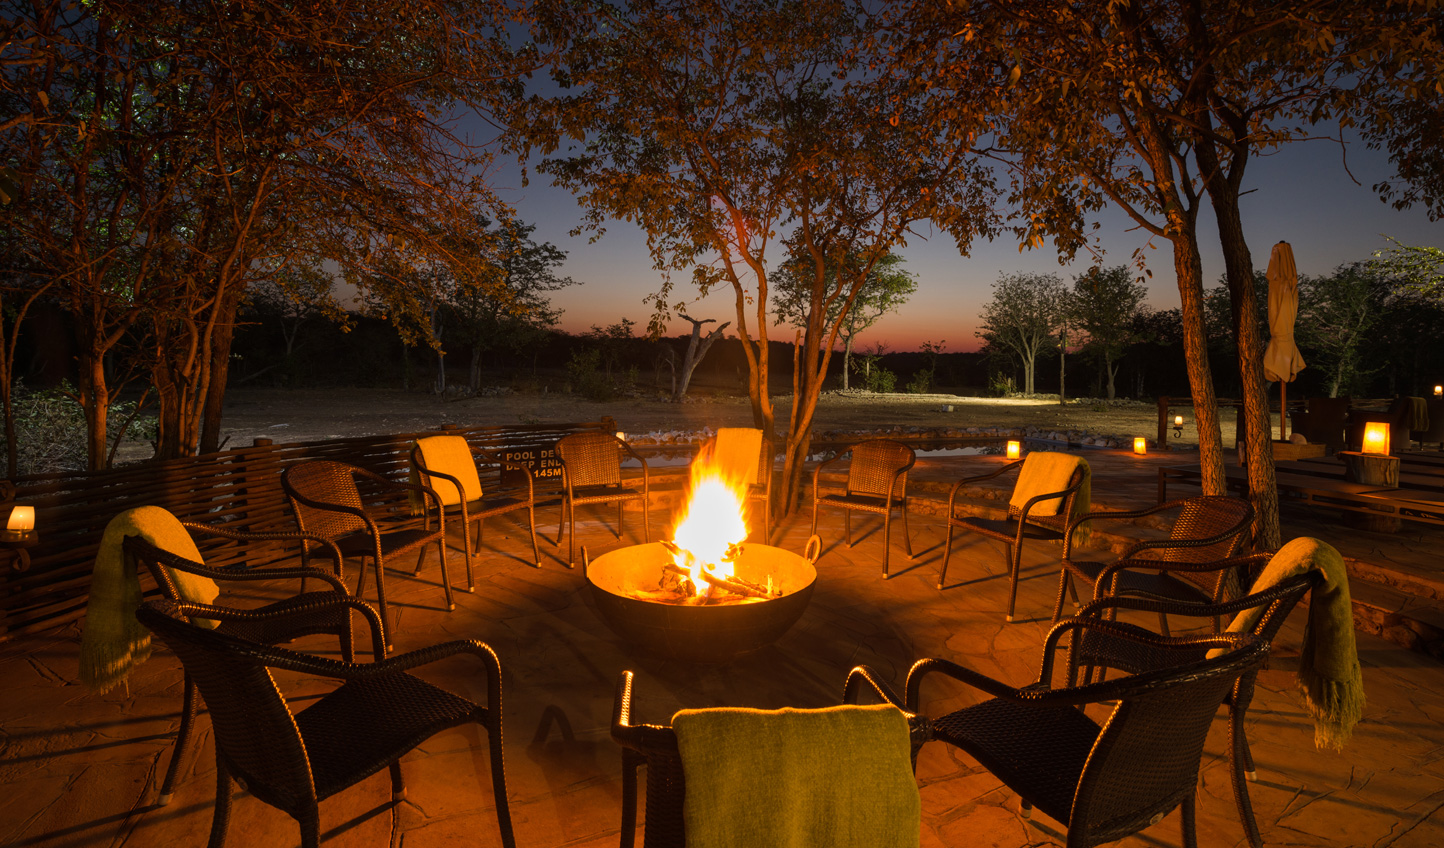 Cosy up by the campfire on cooler evenings